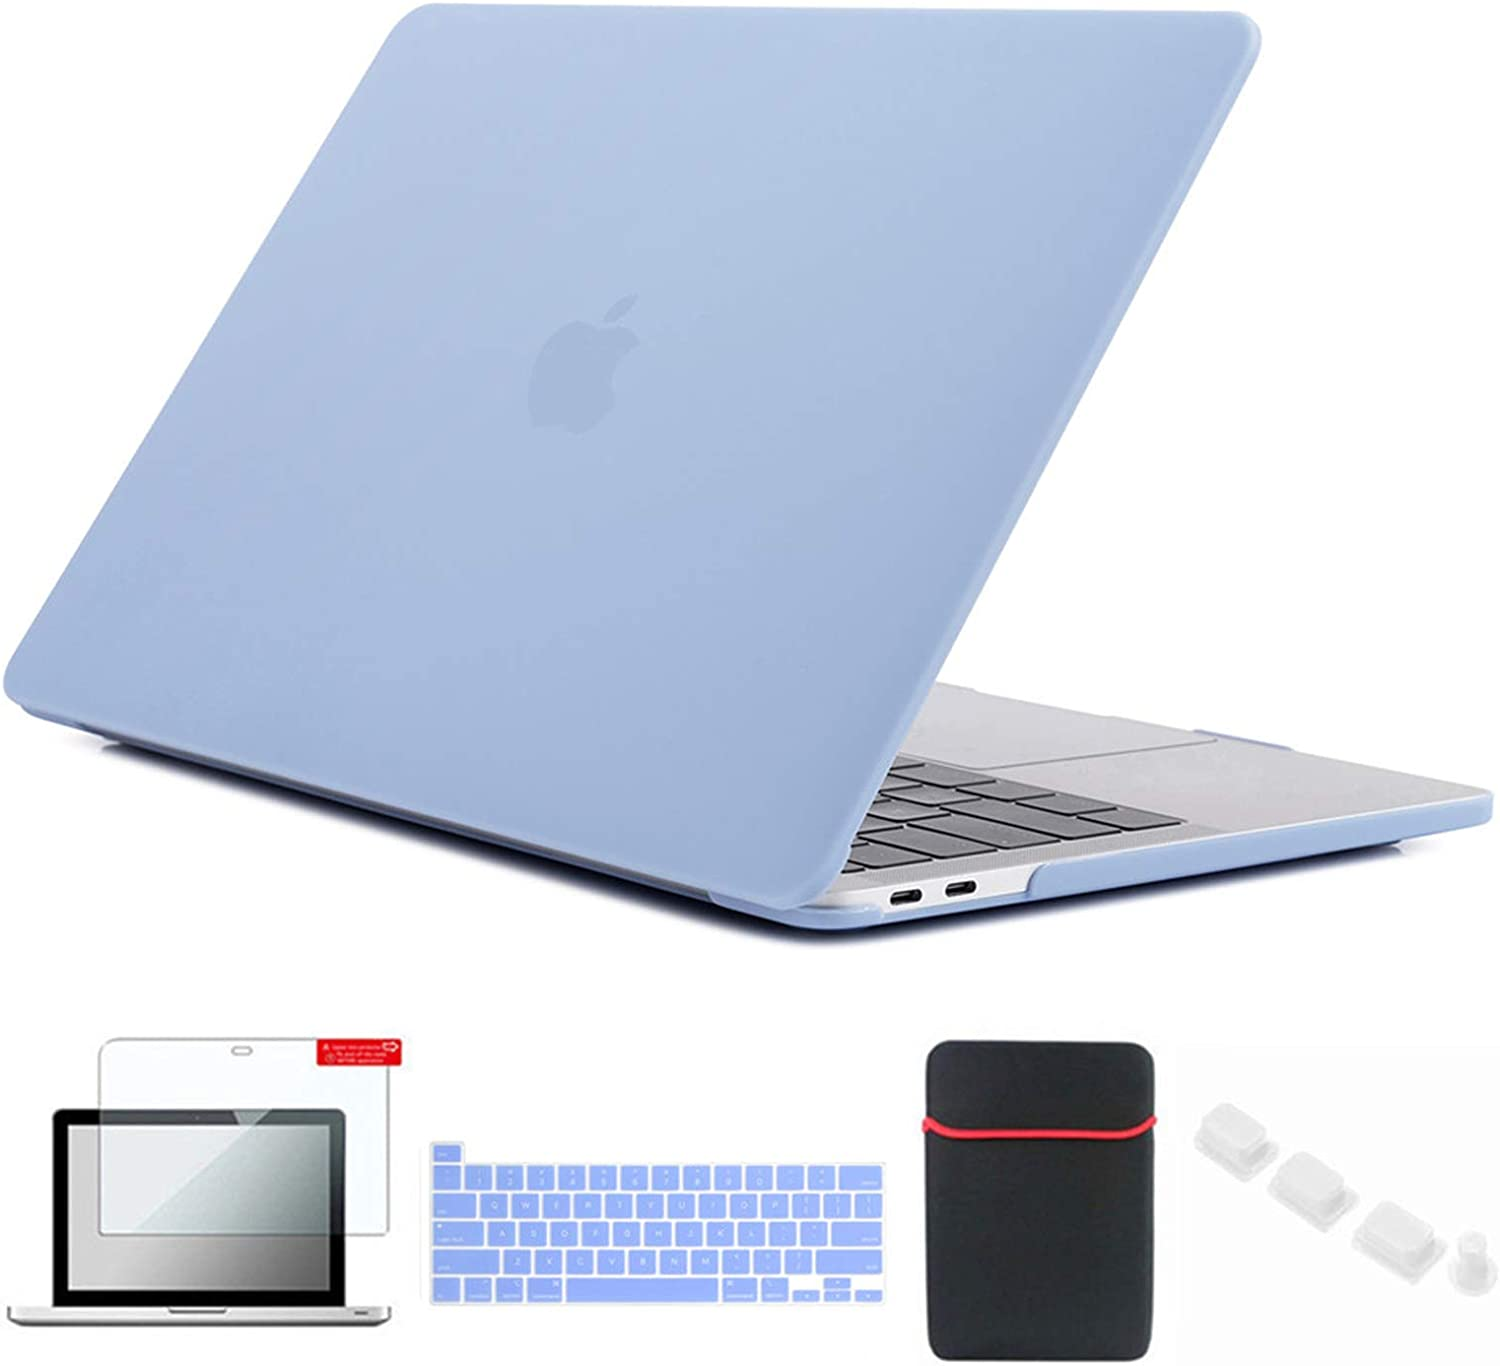 Se7enline MacBook Pro 2021/2020 Case 13 inch Laptop Cover Compatible with MacBook Pro 13-inch Model M1 A2338/A2251/A2289 with Sleeve Bag, Keyboard Cover, Screen Protector, Dust Plug, Serenity Blue